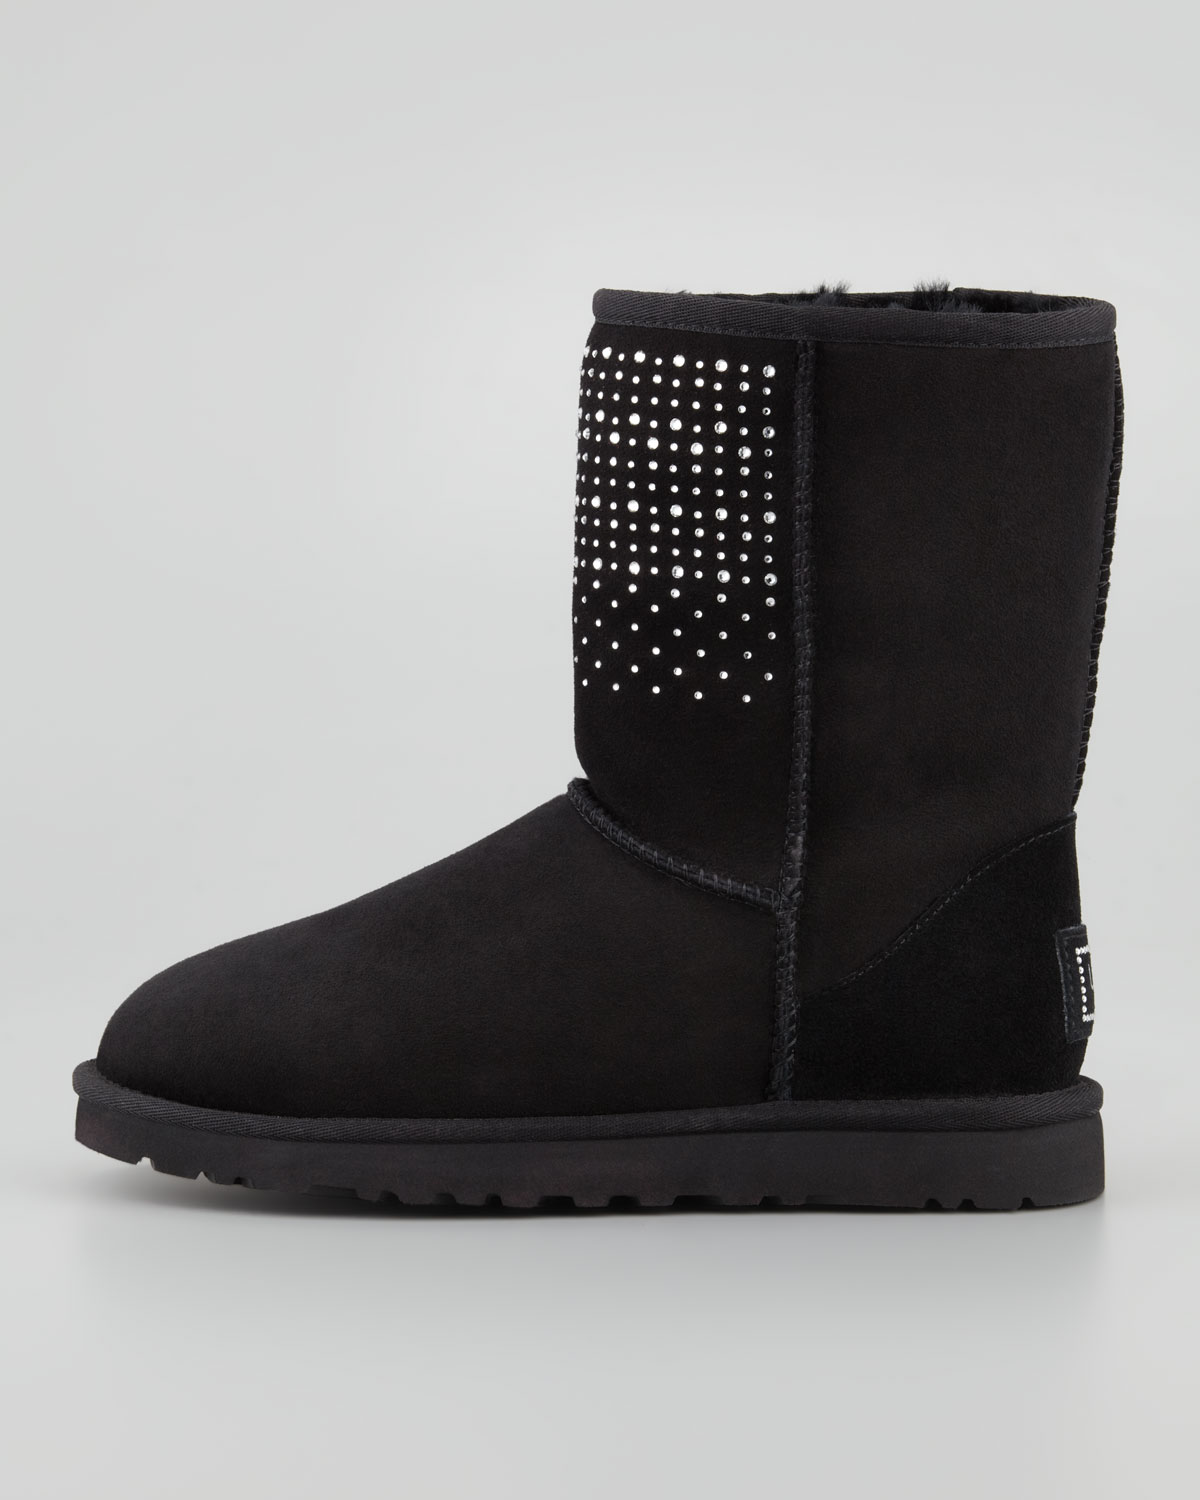 black ugg type boots